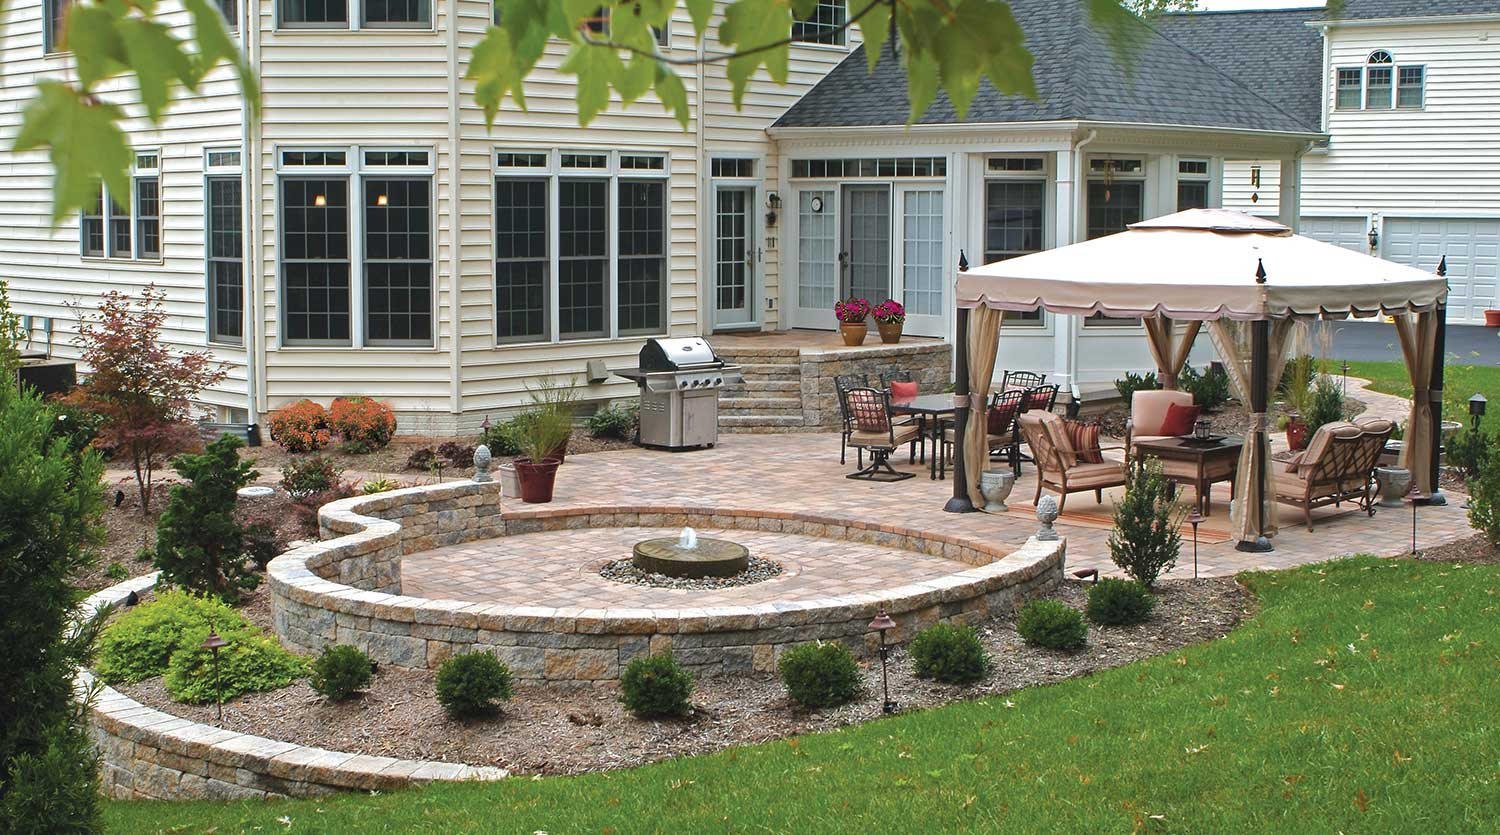 Best Landscape Company in Prince William County